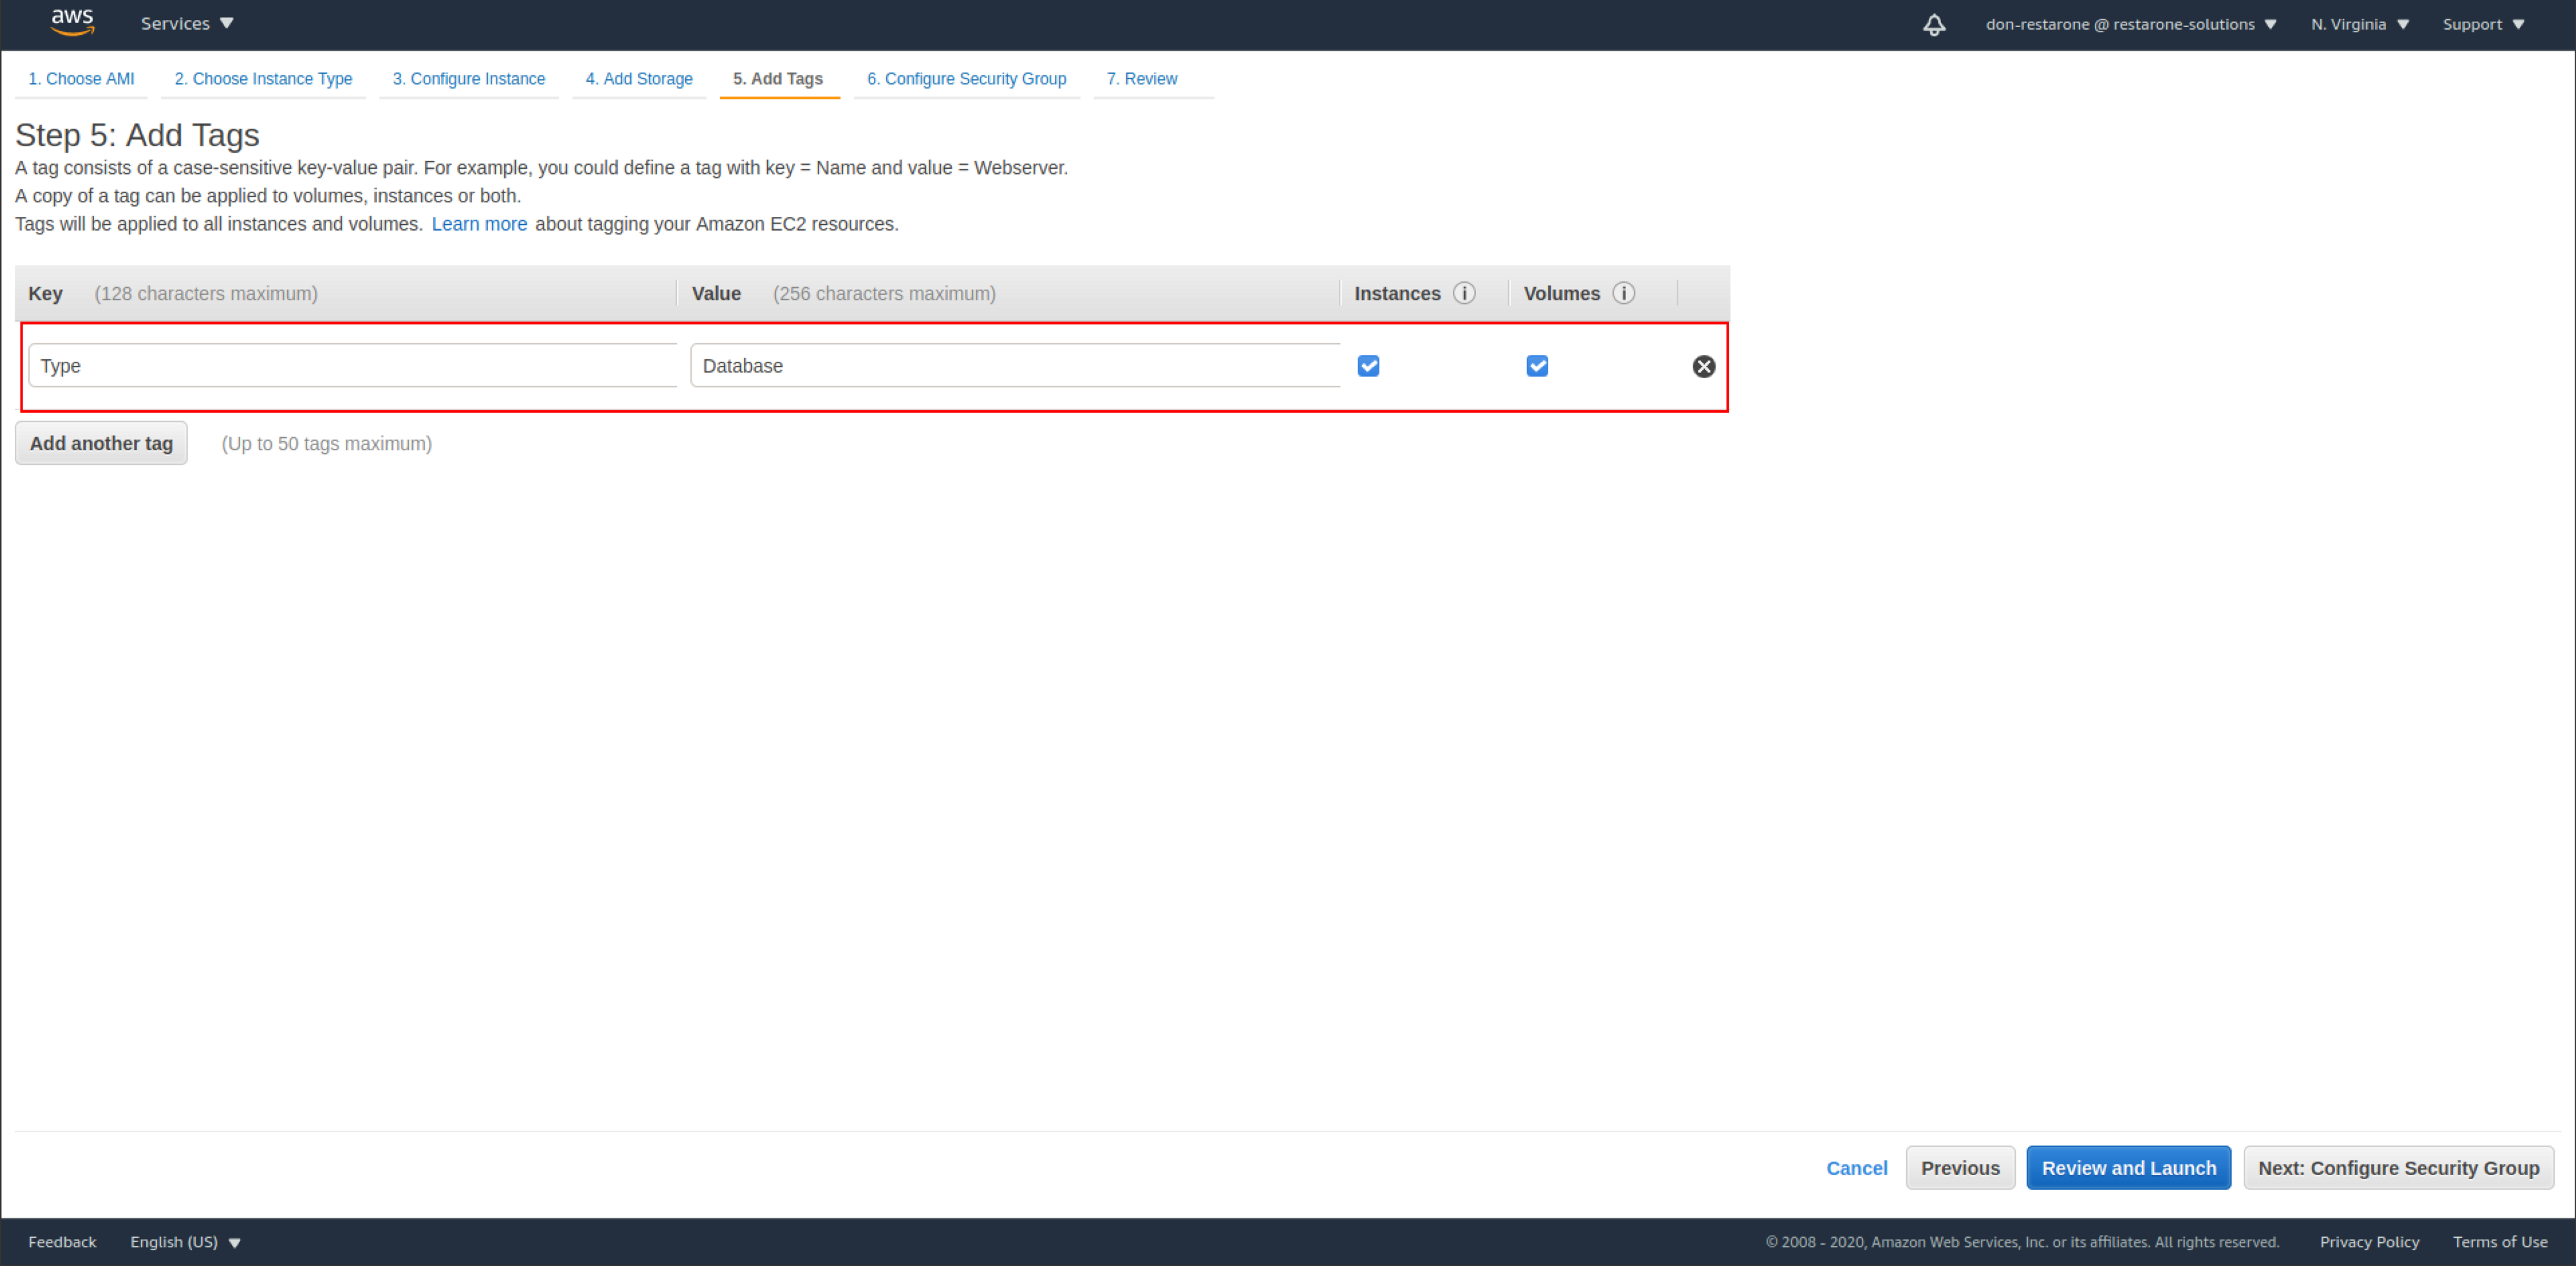 screenshot: step 5. add tags with the key set to type and the value set to database